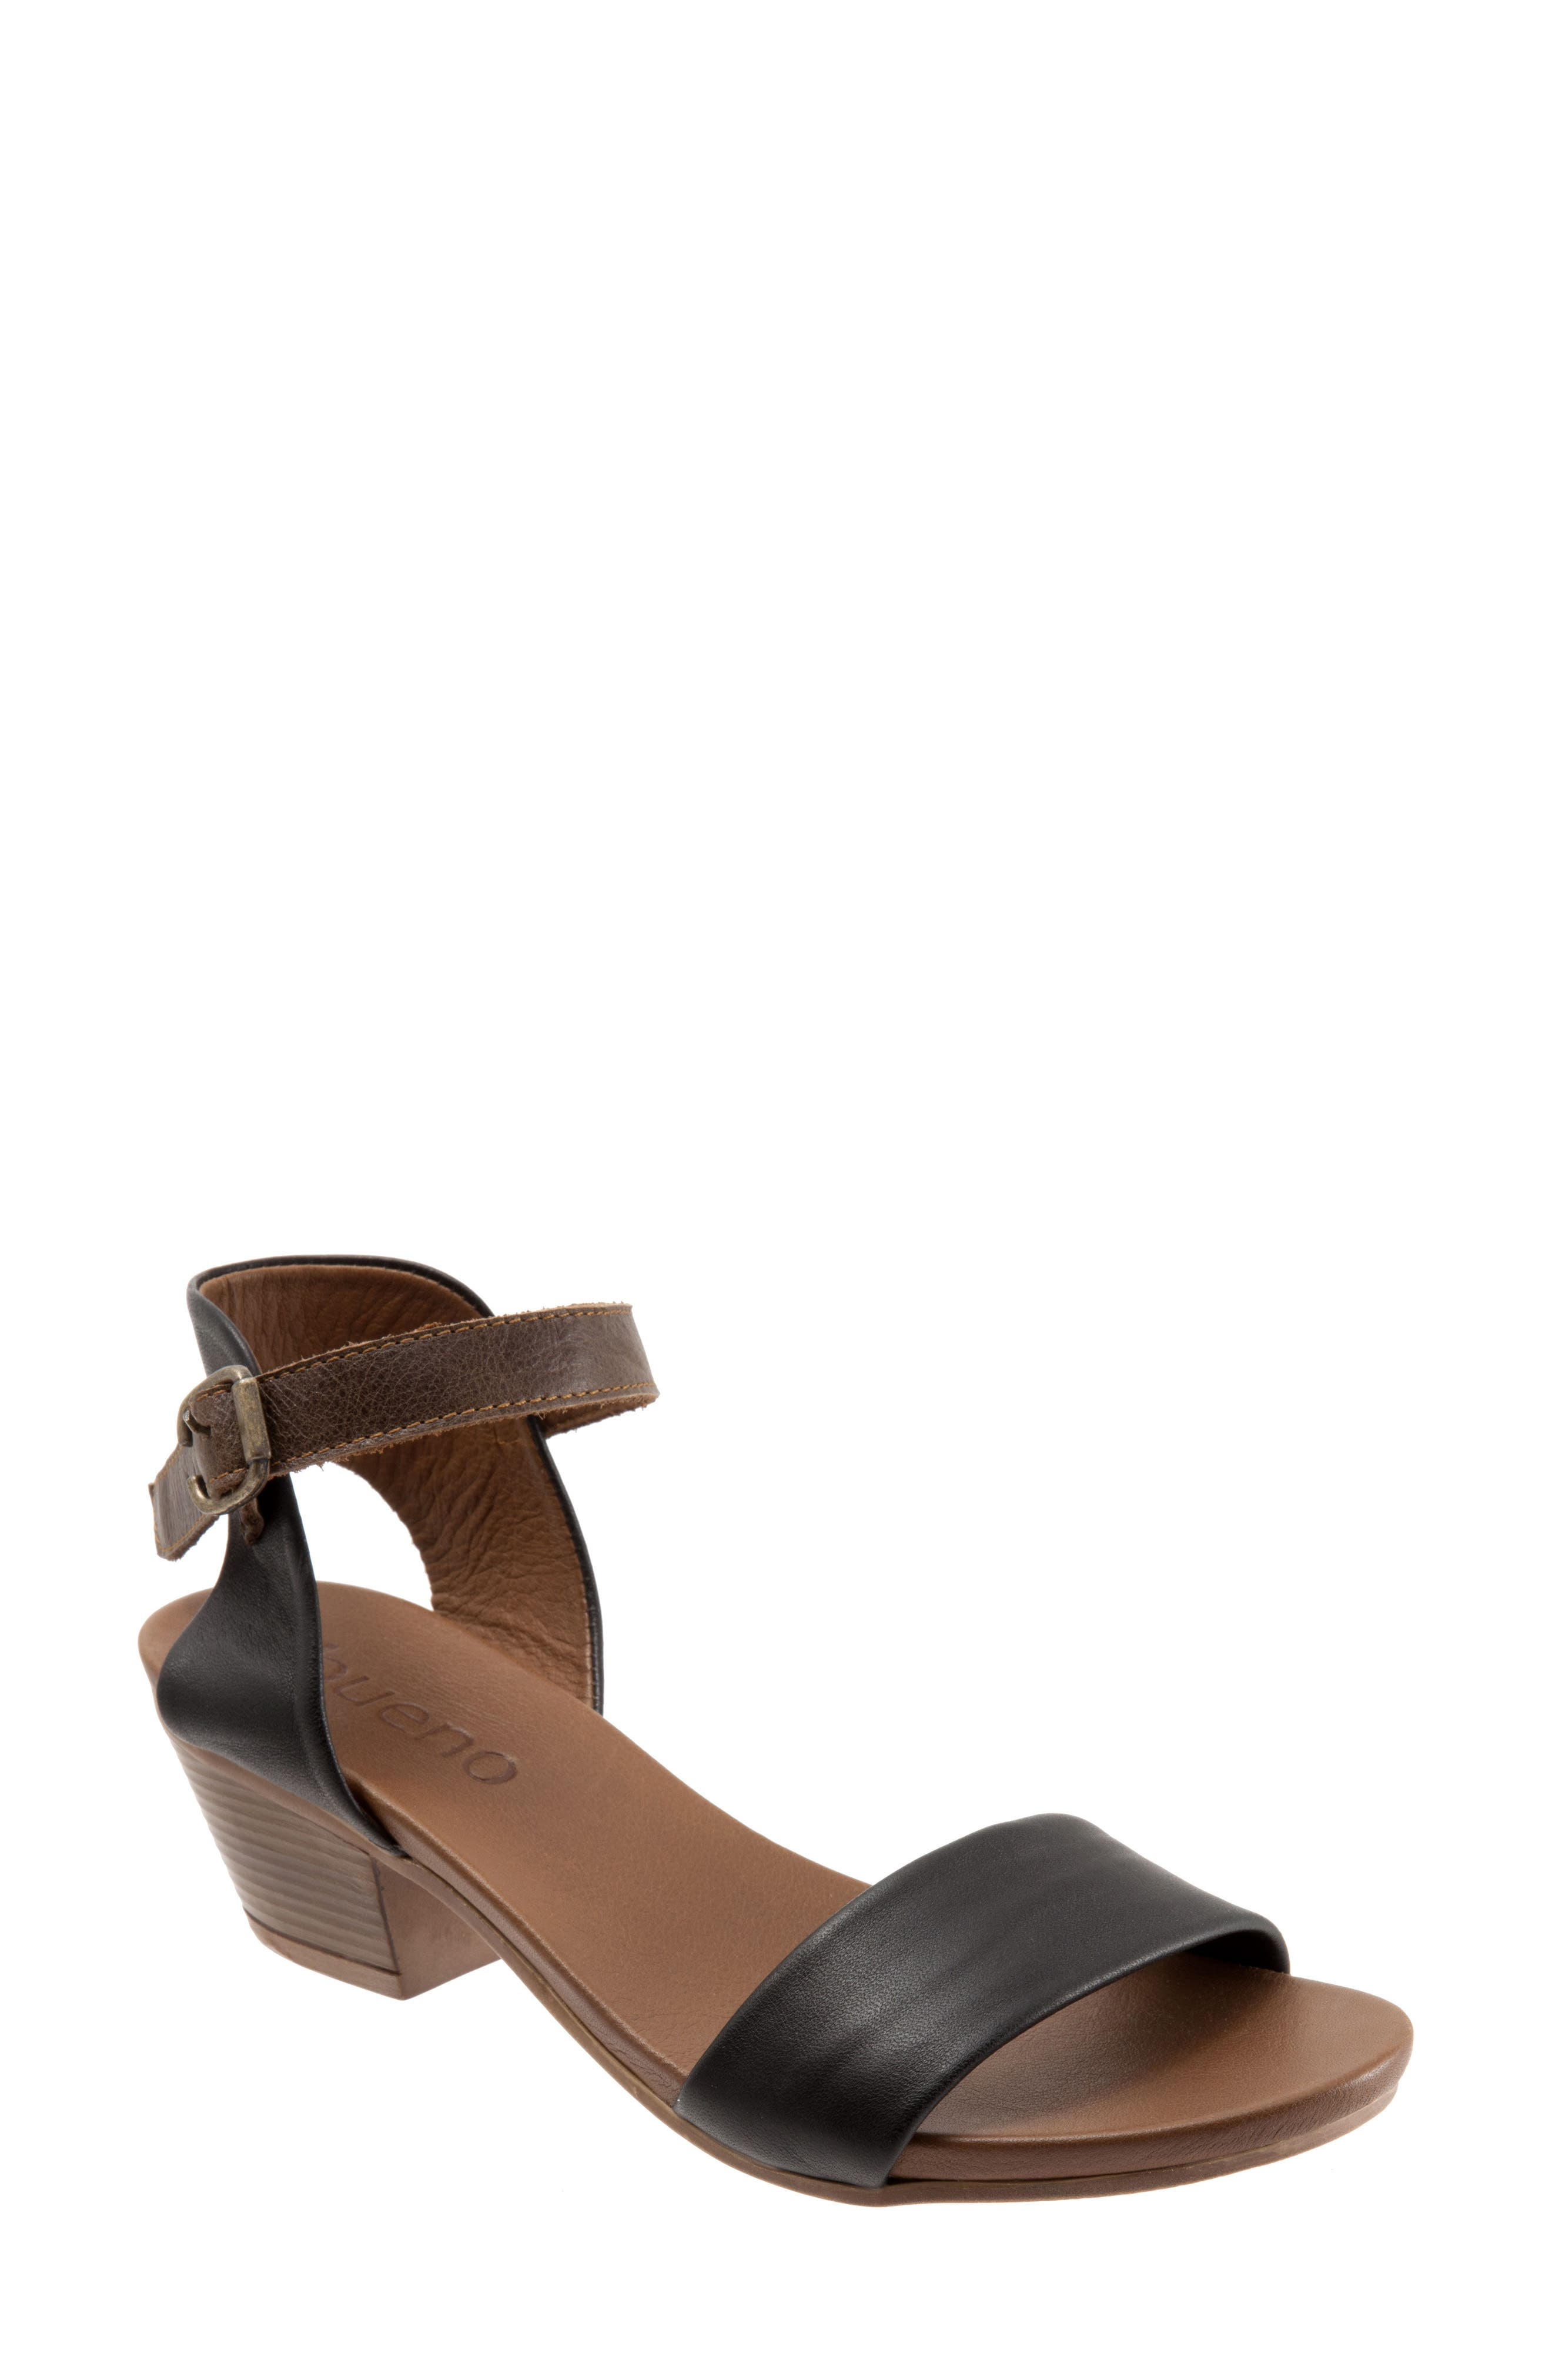 Sue Sandal,                             Main thumbnail 1, color,                             BLACK LEATHER